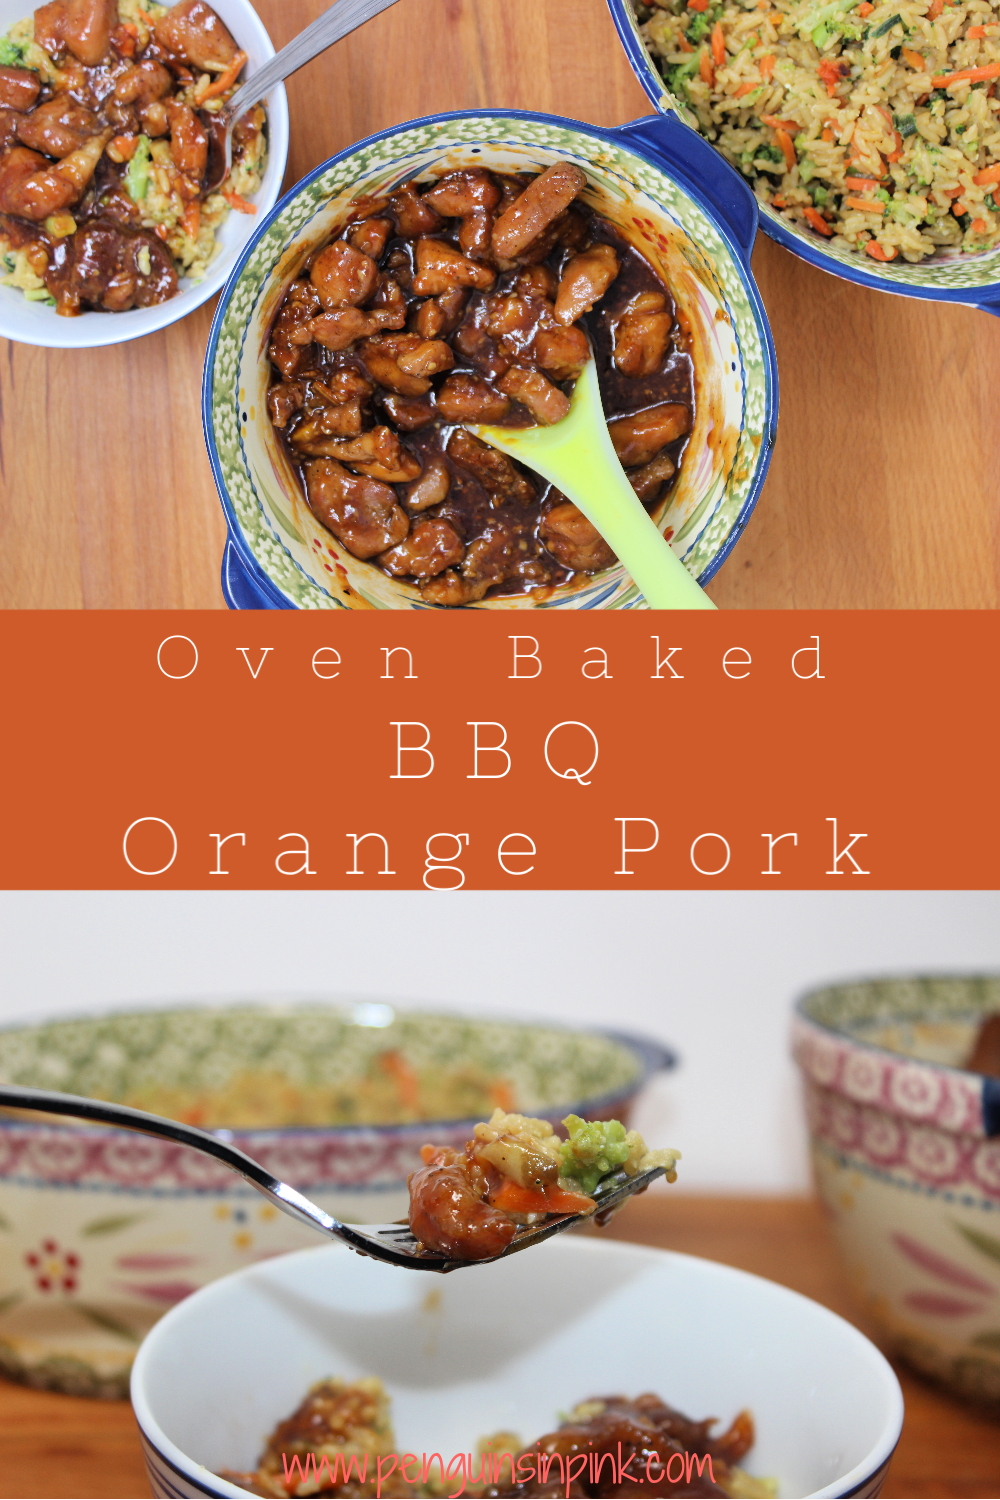 Pork roast pieces are seasoned with a blend of garlic, ginger, allspice, and white pepper and baked in the oven before being covered in orange BBQ sauce.